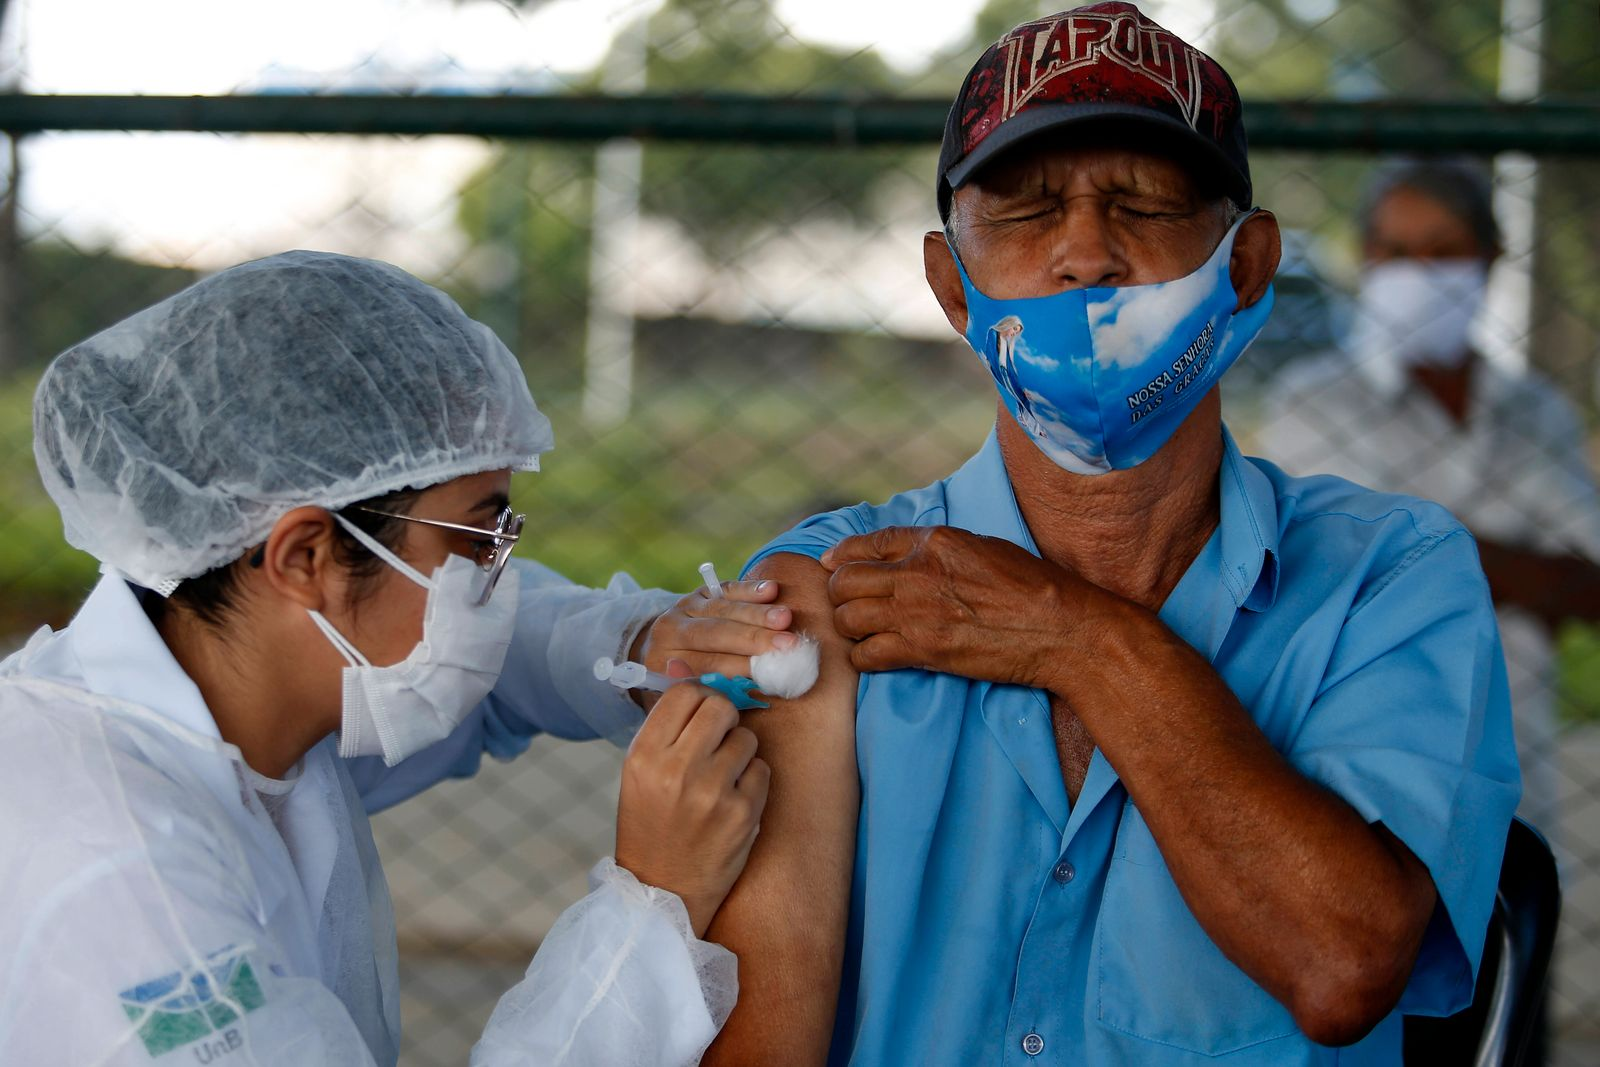 (210323) -- BRASILIA, March 23, 2021 -- A senior citizen receives a dose of Chinese-developed COVID-19 vaccine in Brasil